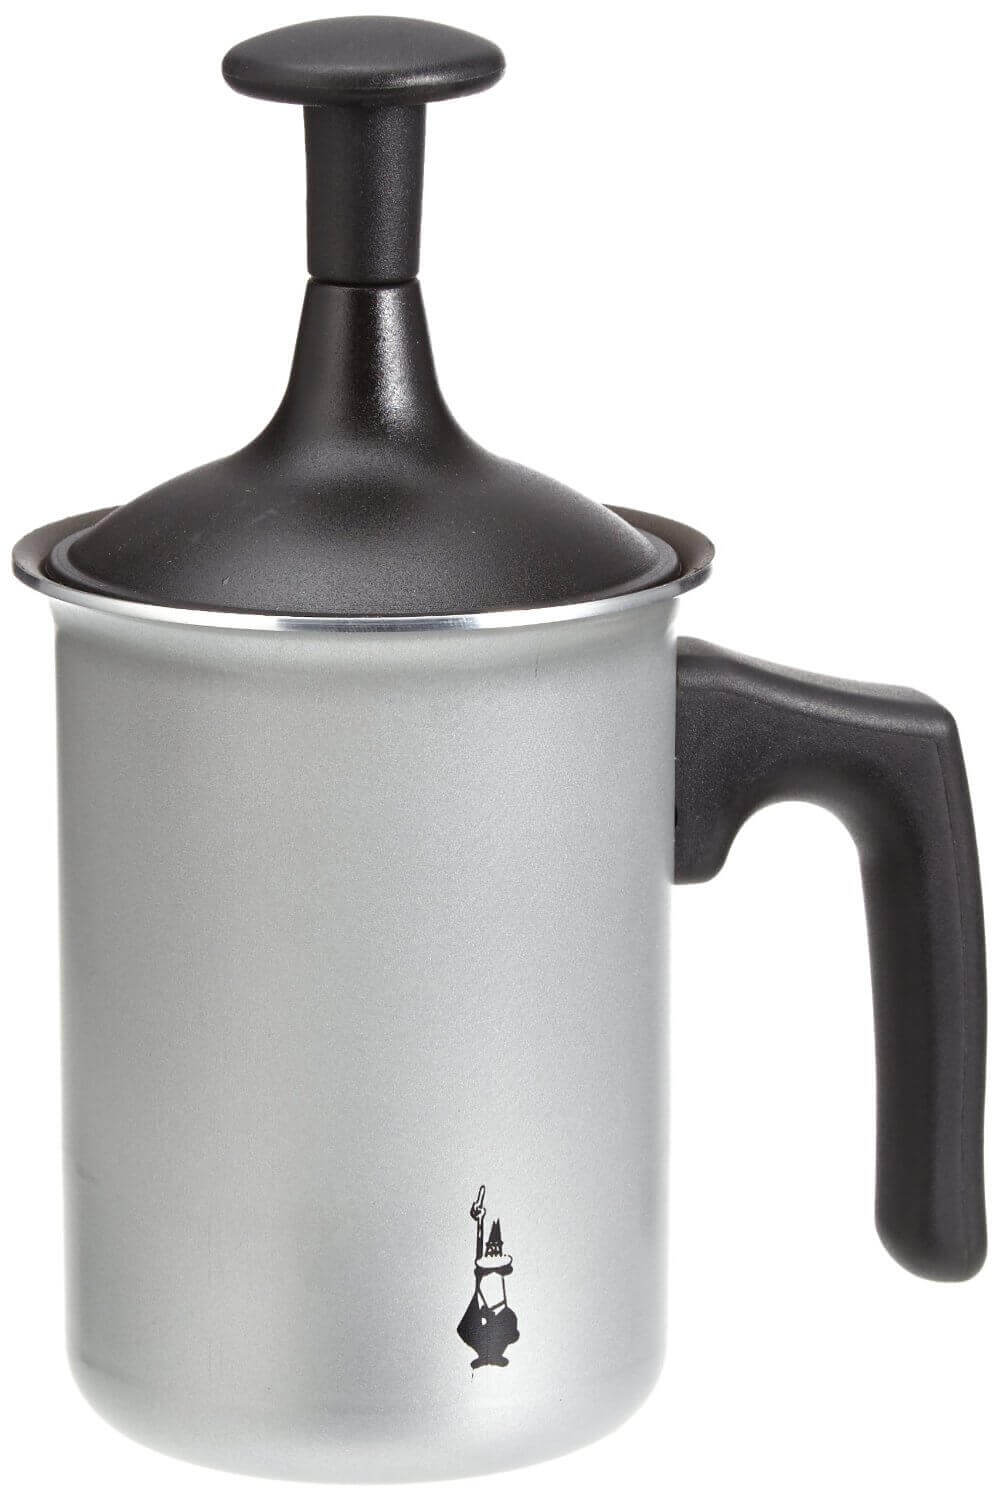 bodum milk frother battery instructions